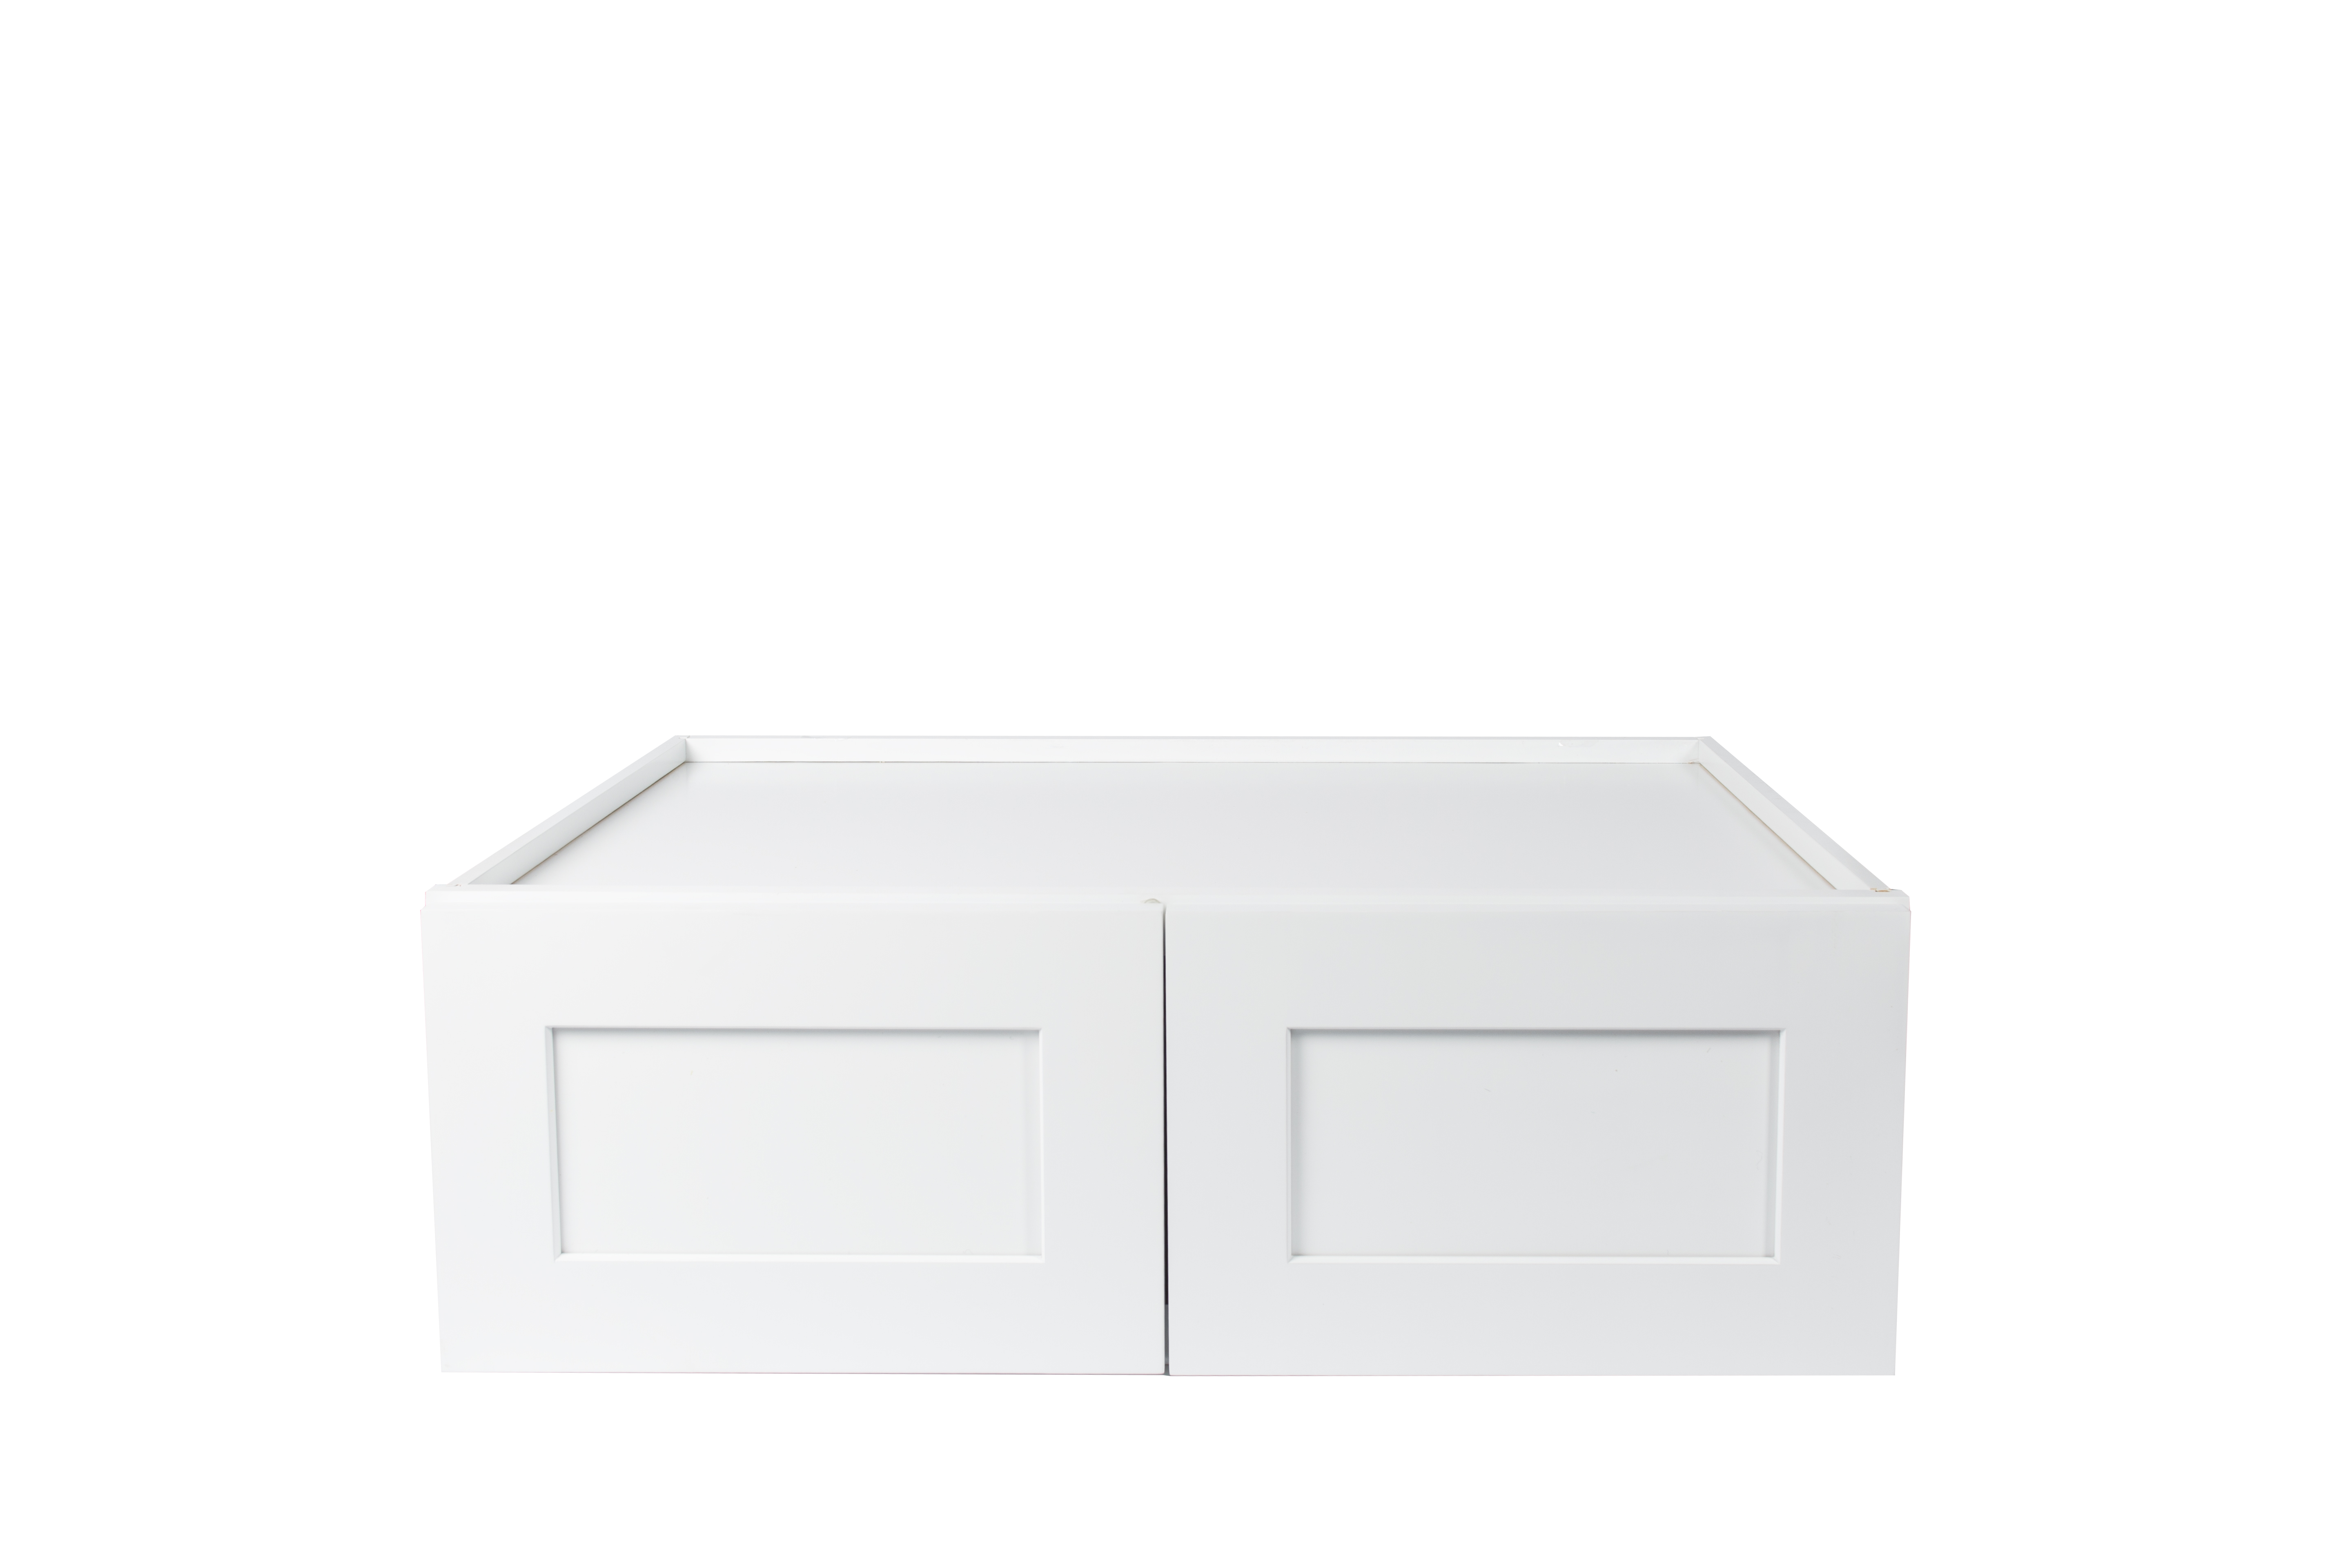 Ready to Assemble 33x24x12 in. High Double Door with 1 Adjustable Shelf Wall Cabinet in Shaker White